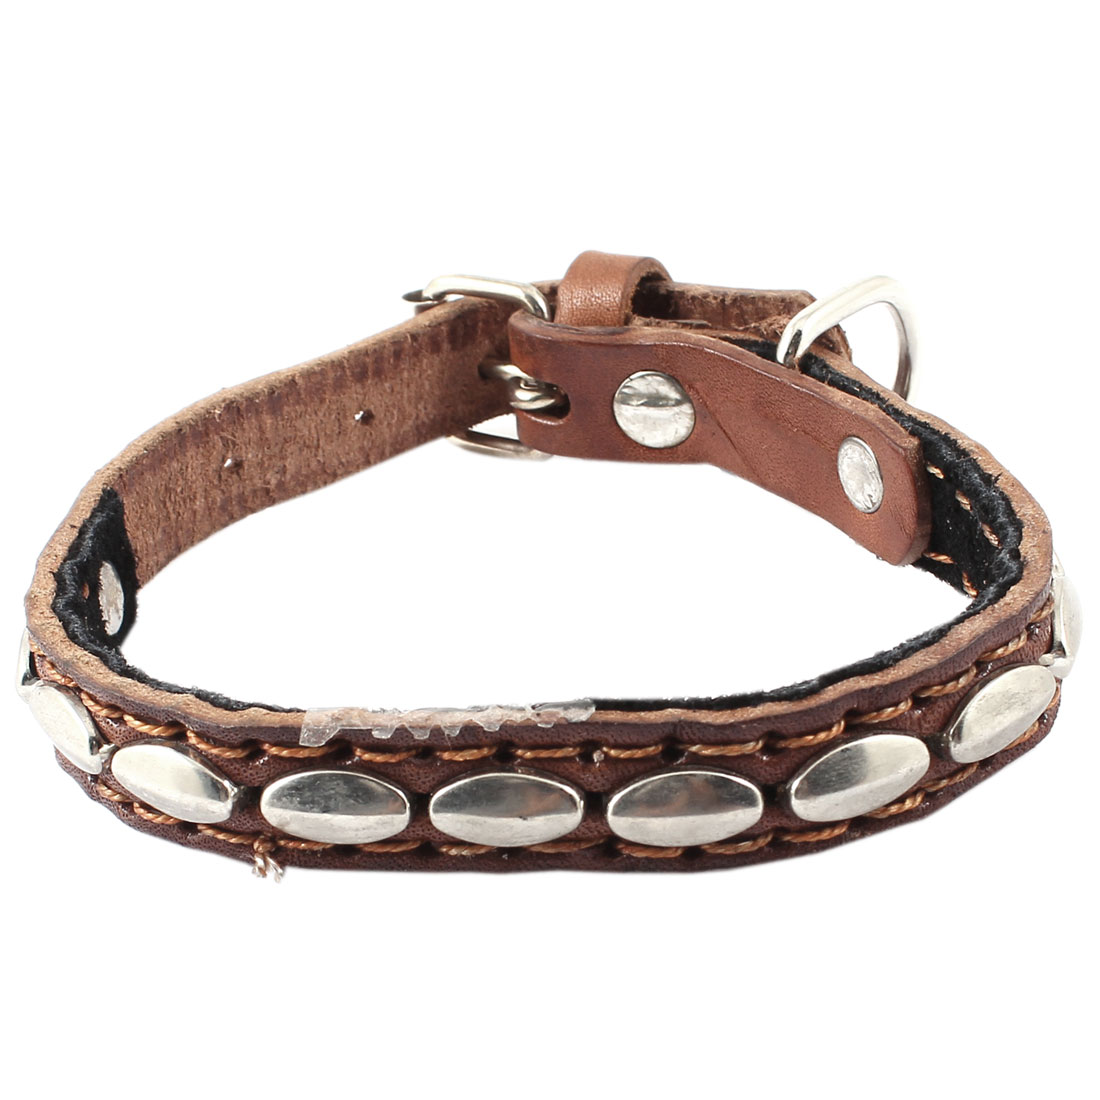 Single Prong Buckle Metal Silver Tone Rivet Detail Faux Leather Adjustable Belt Collar Coffee Color for Pet Cat Dog Doggy